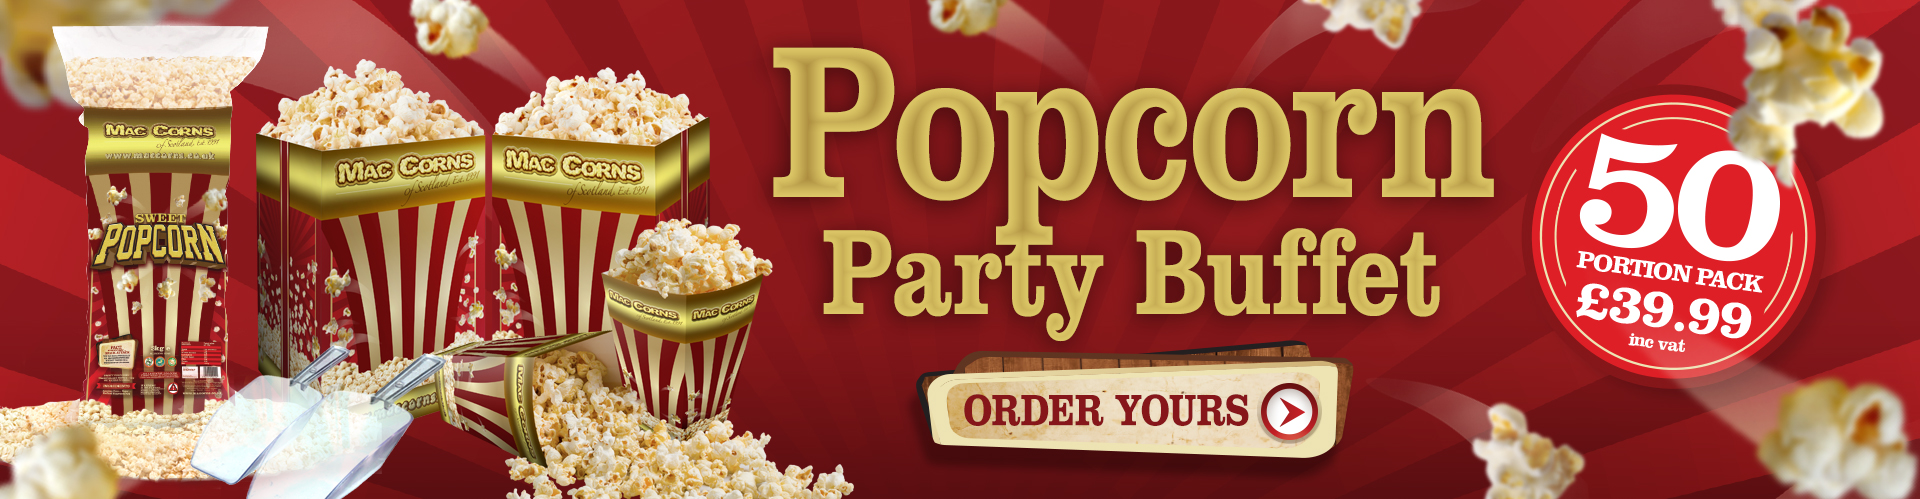 Popcorn Party Buffet